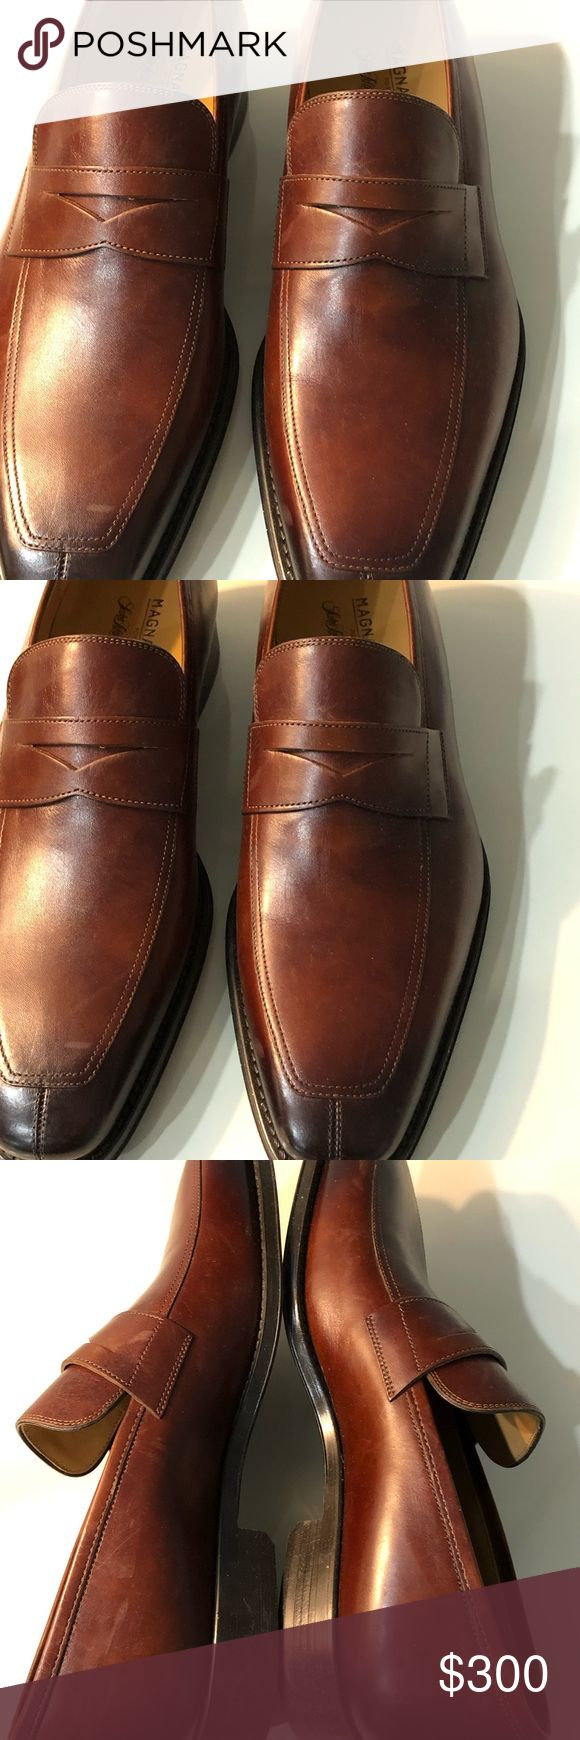 MAGANNI SAKS FIFTH AVENUE BROWN LOAFERS 8M Men Brown Loafers Magnanni SAKS Fifth...